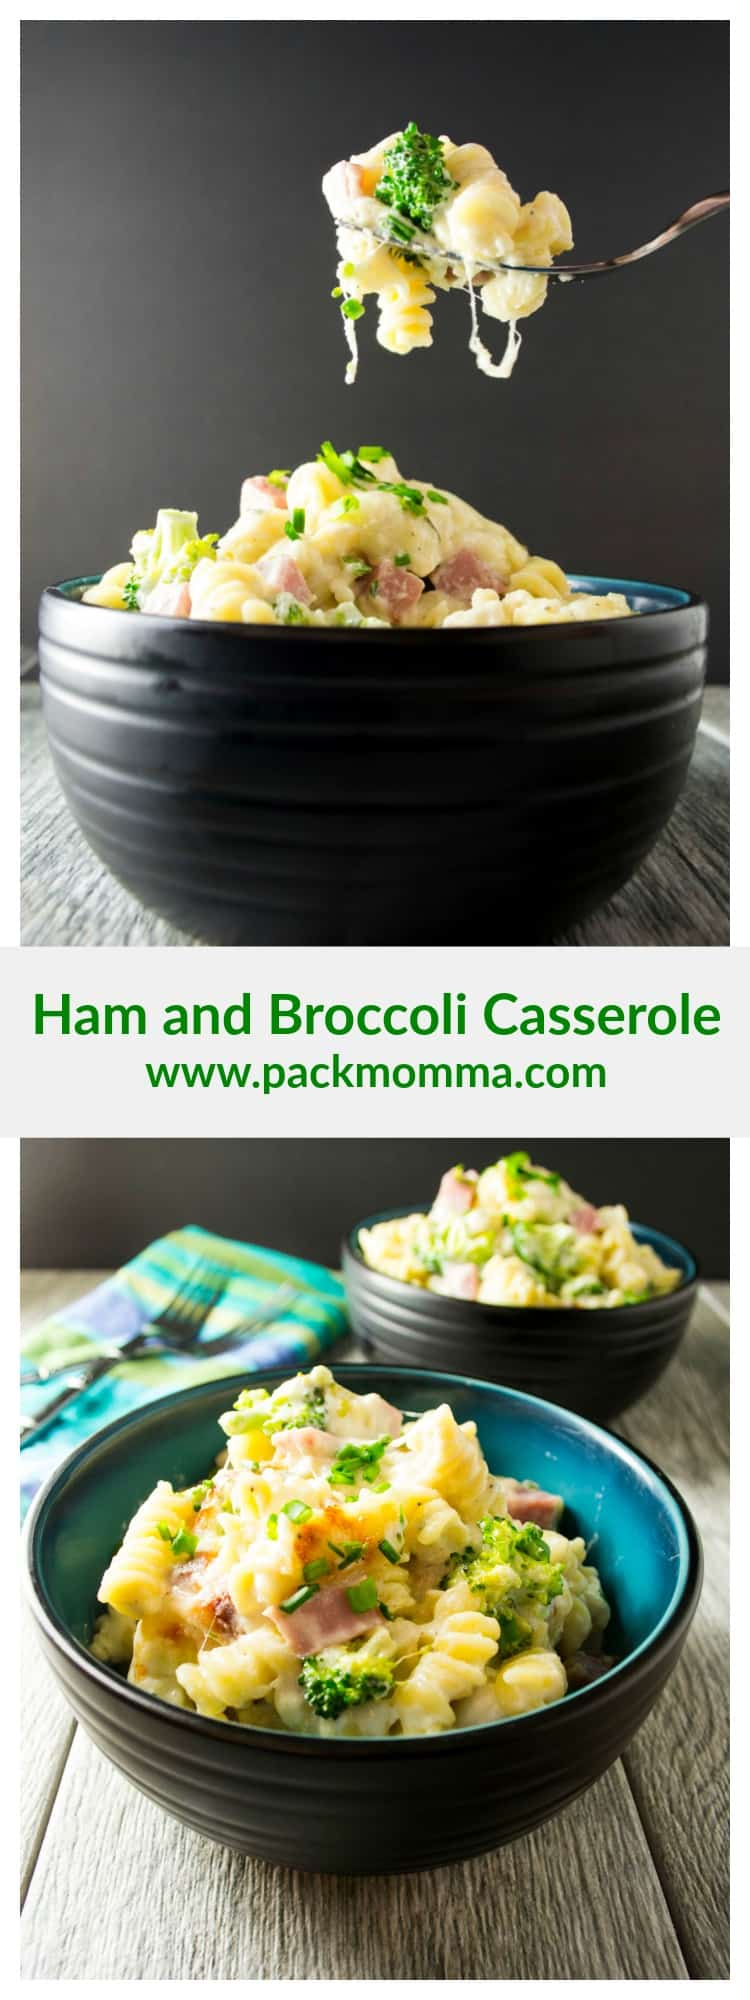 Ham and Broccoli Casserole | This Ham and Broccoli Casserole is amazing, easy and delicious! Hearty chunks of ham, broccoli florets and pasta in a creamy cheese sauce - Perfect! | Pack Momma | https://www.packmomma.com